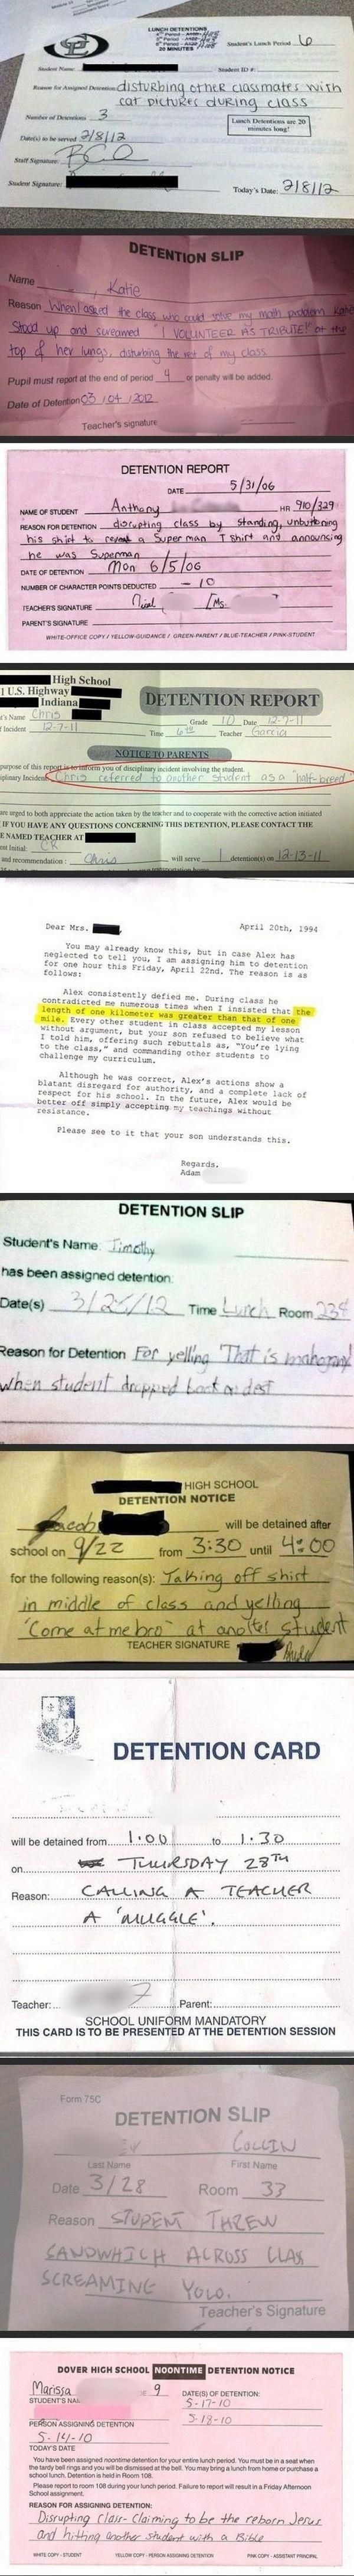 Detention slips. I got detention once between K-12. The reason was pretty epic: I was caught skipping class in the woods behind the school, pretending to be hobbits with three of my friends.